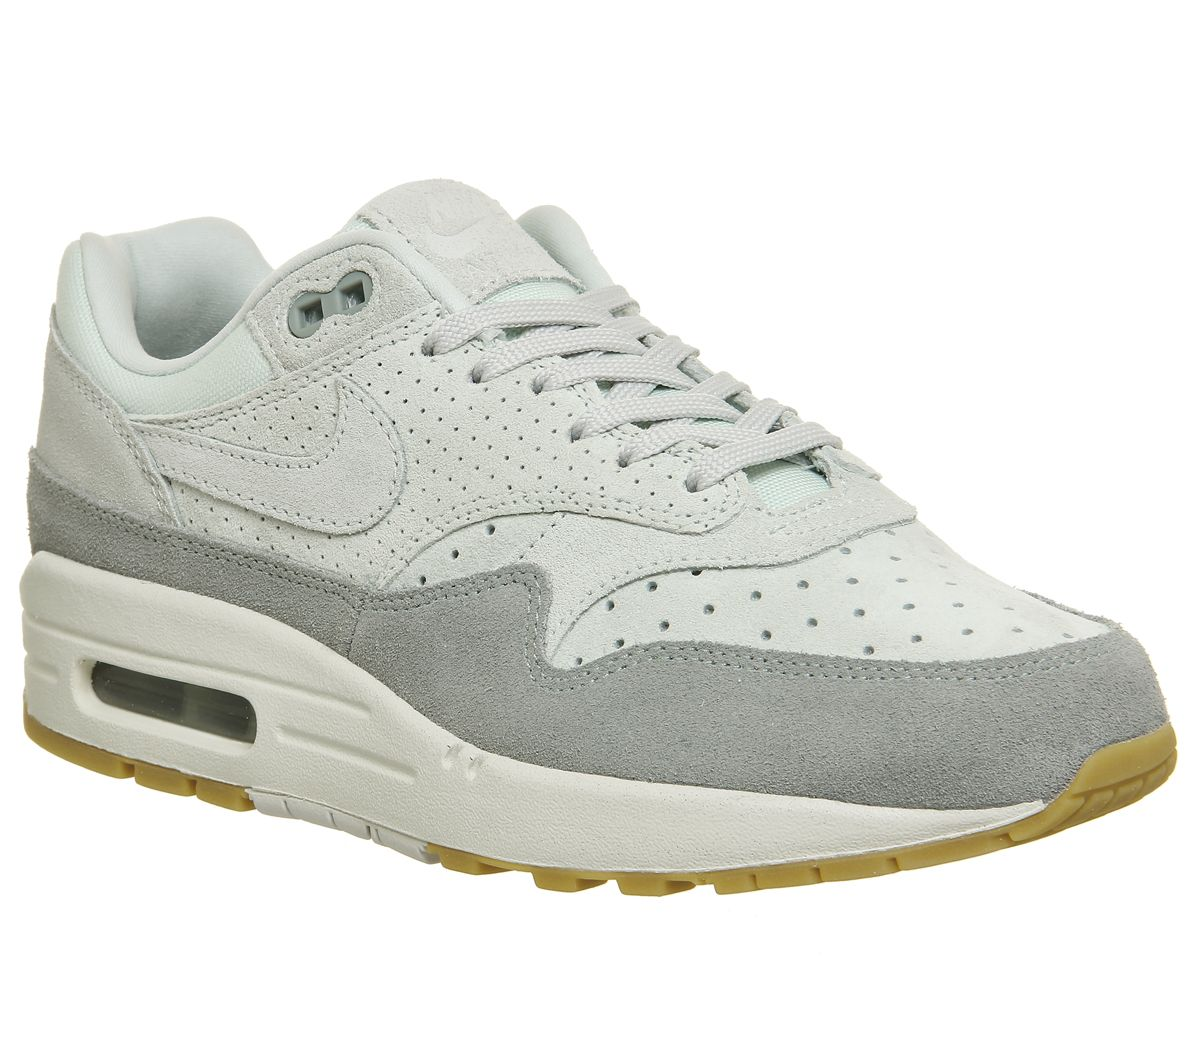 low priced bbb24 b118b Nike Air Max 1 Trainers Barely Grey Light Pumice - Hers trainers